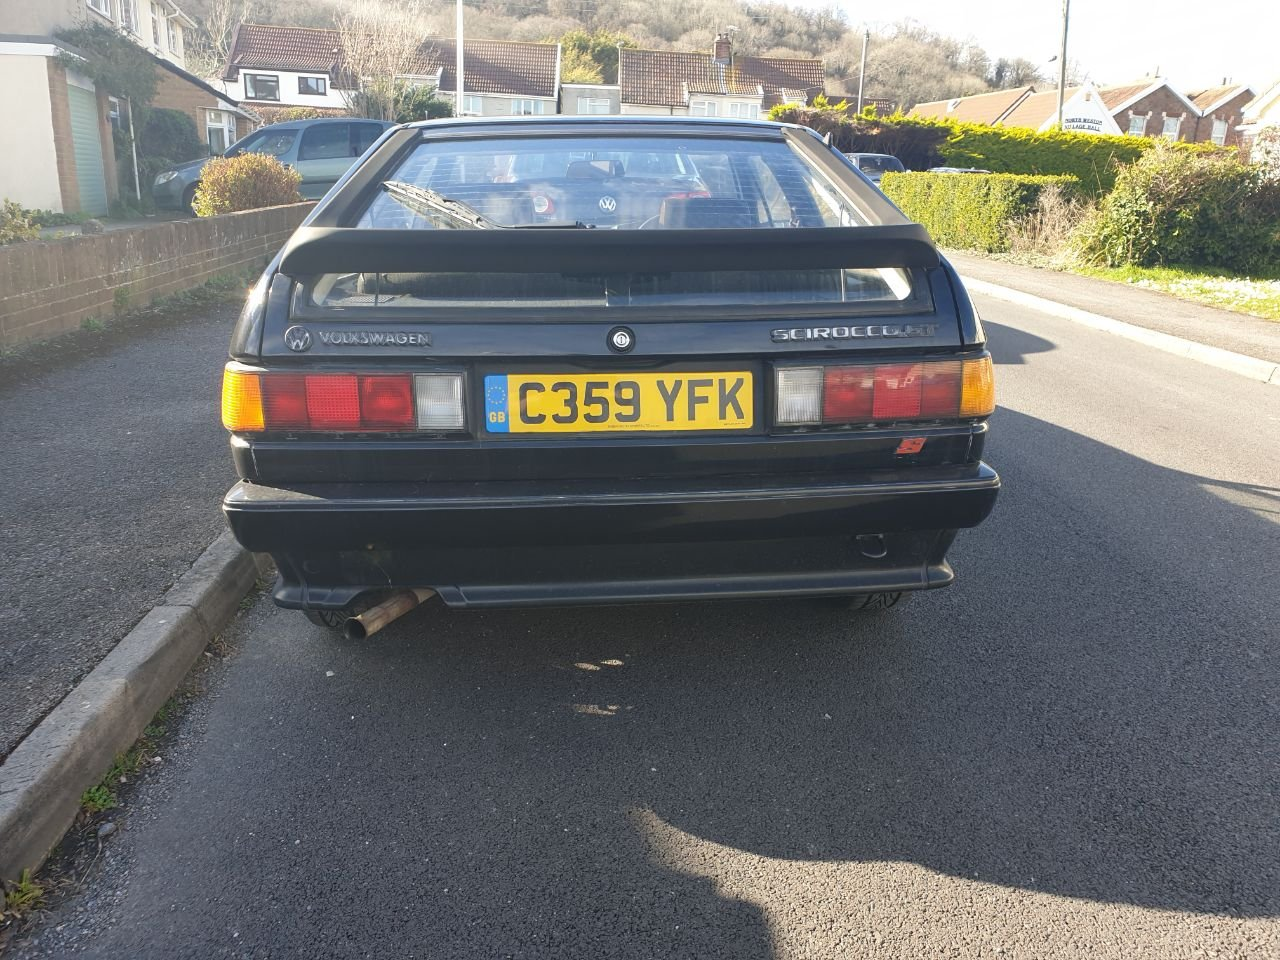 1986 Scirocco Mk2 GT S for sale (Low mileage) SOLD (picture 2 of 6)